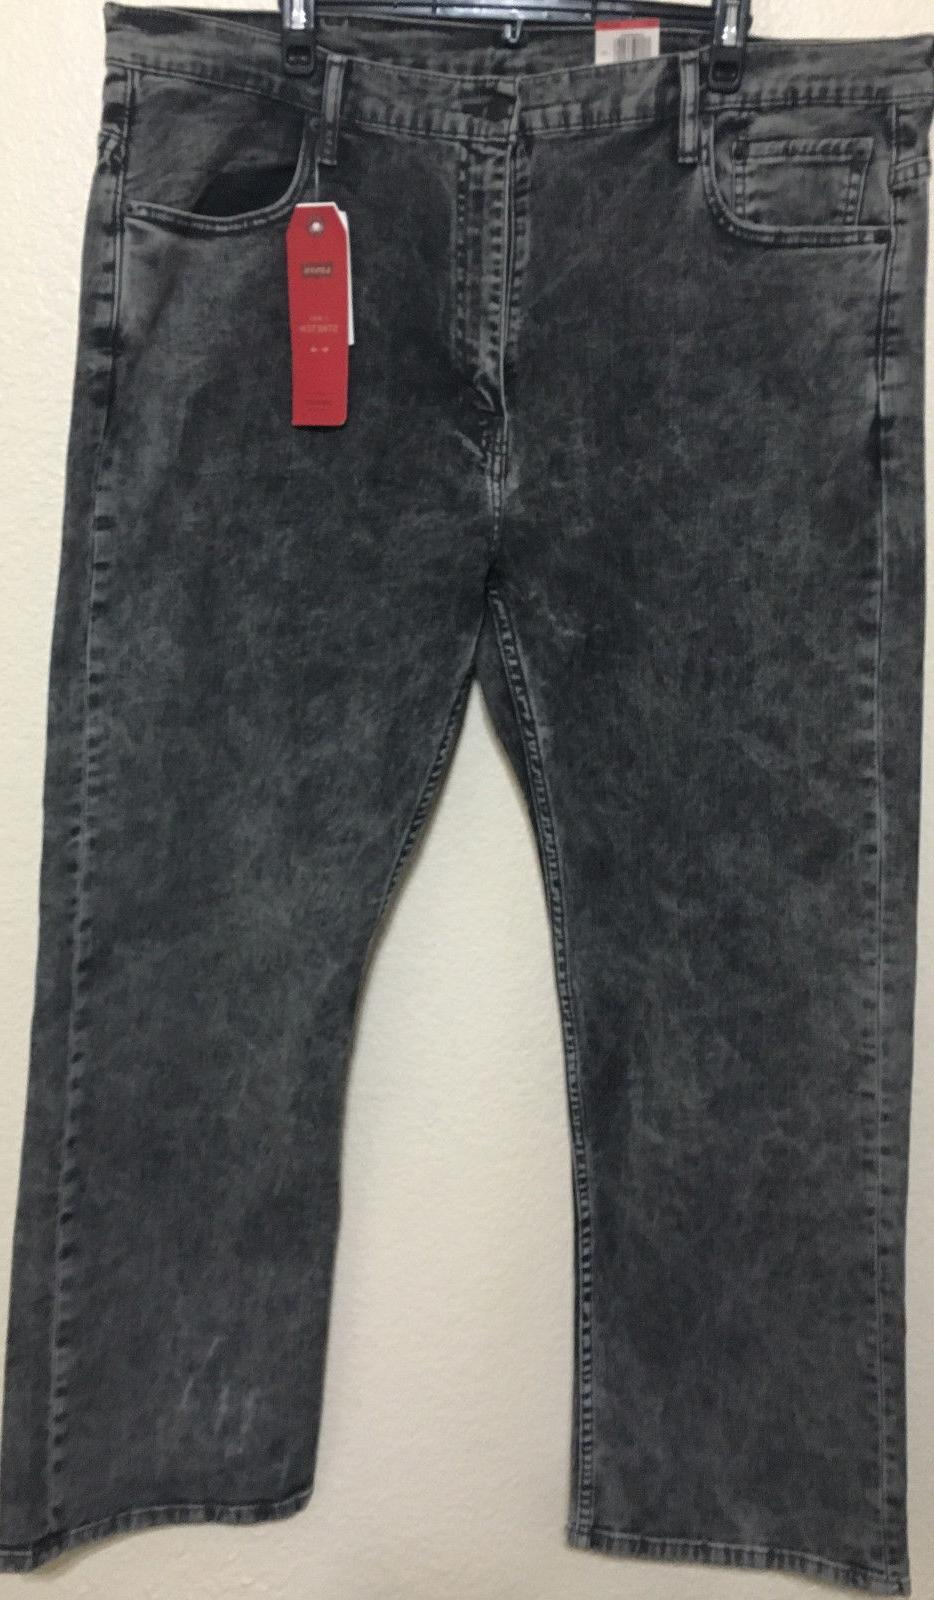 NWT MENS LEVI'S 0243 STRETCH JEANS PANT CHARCOAL DENIM